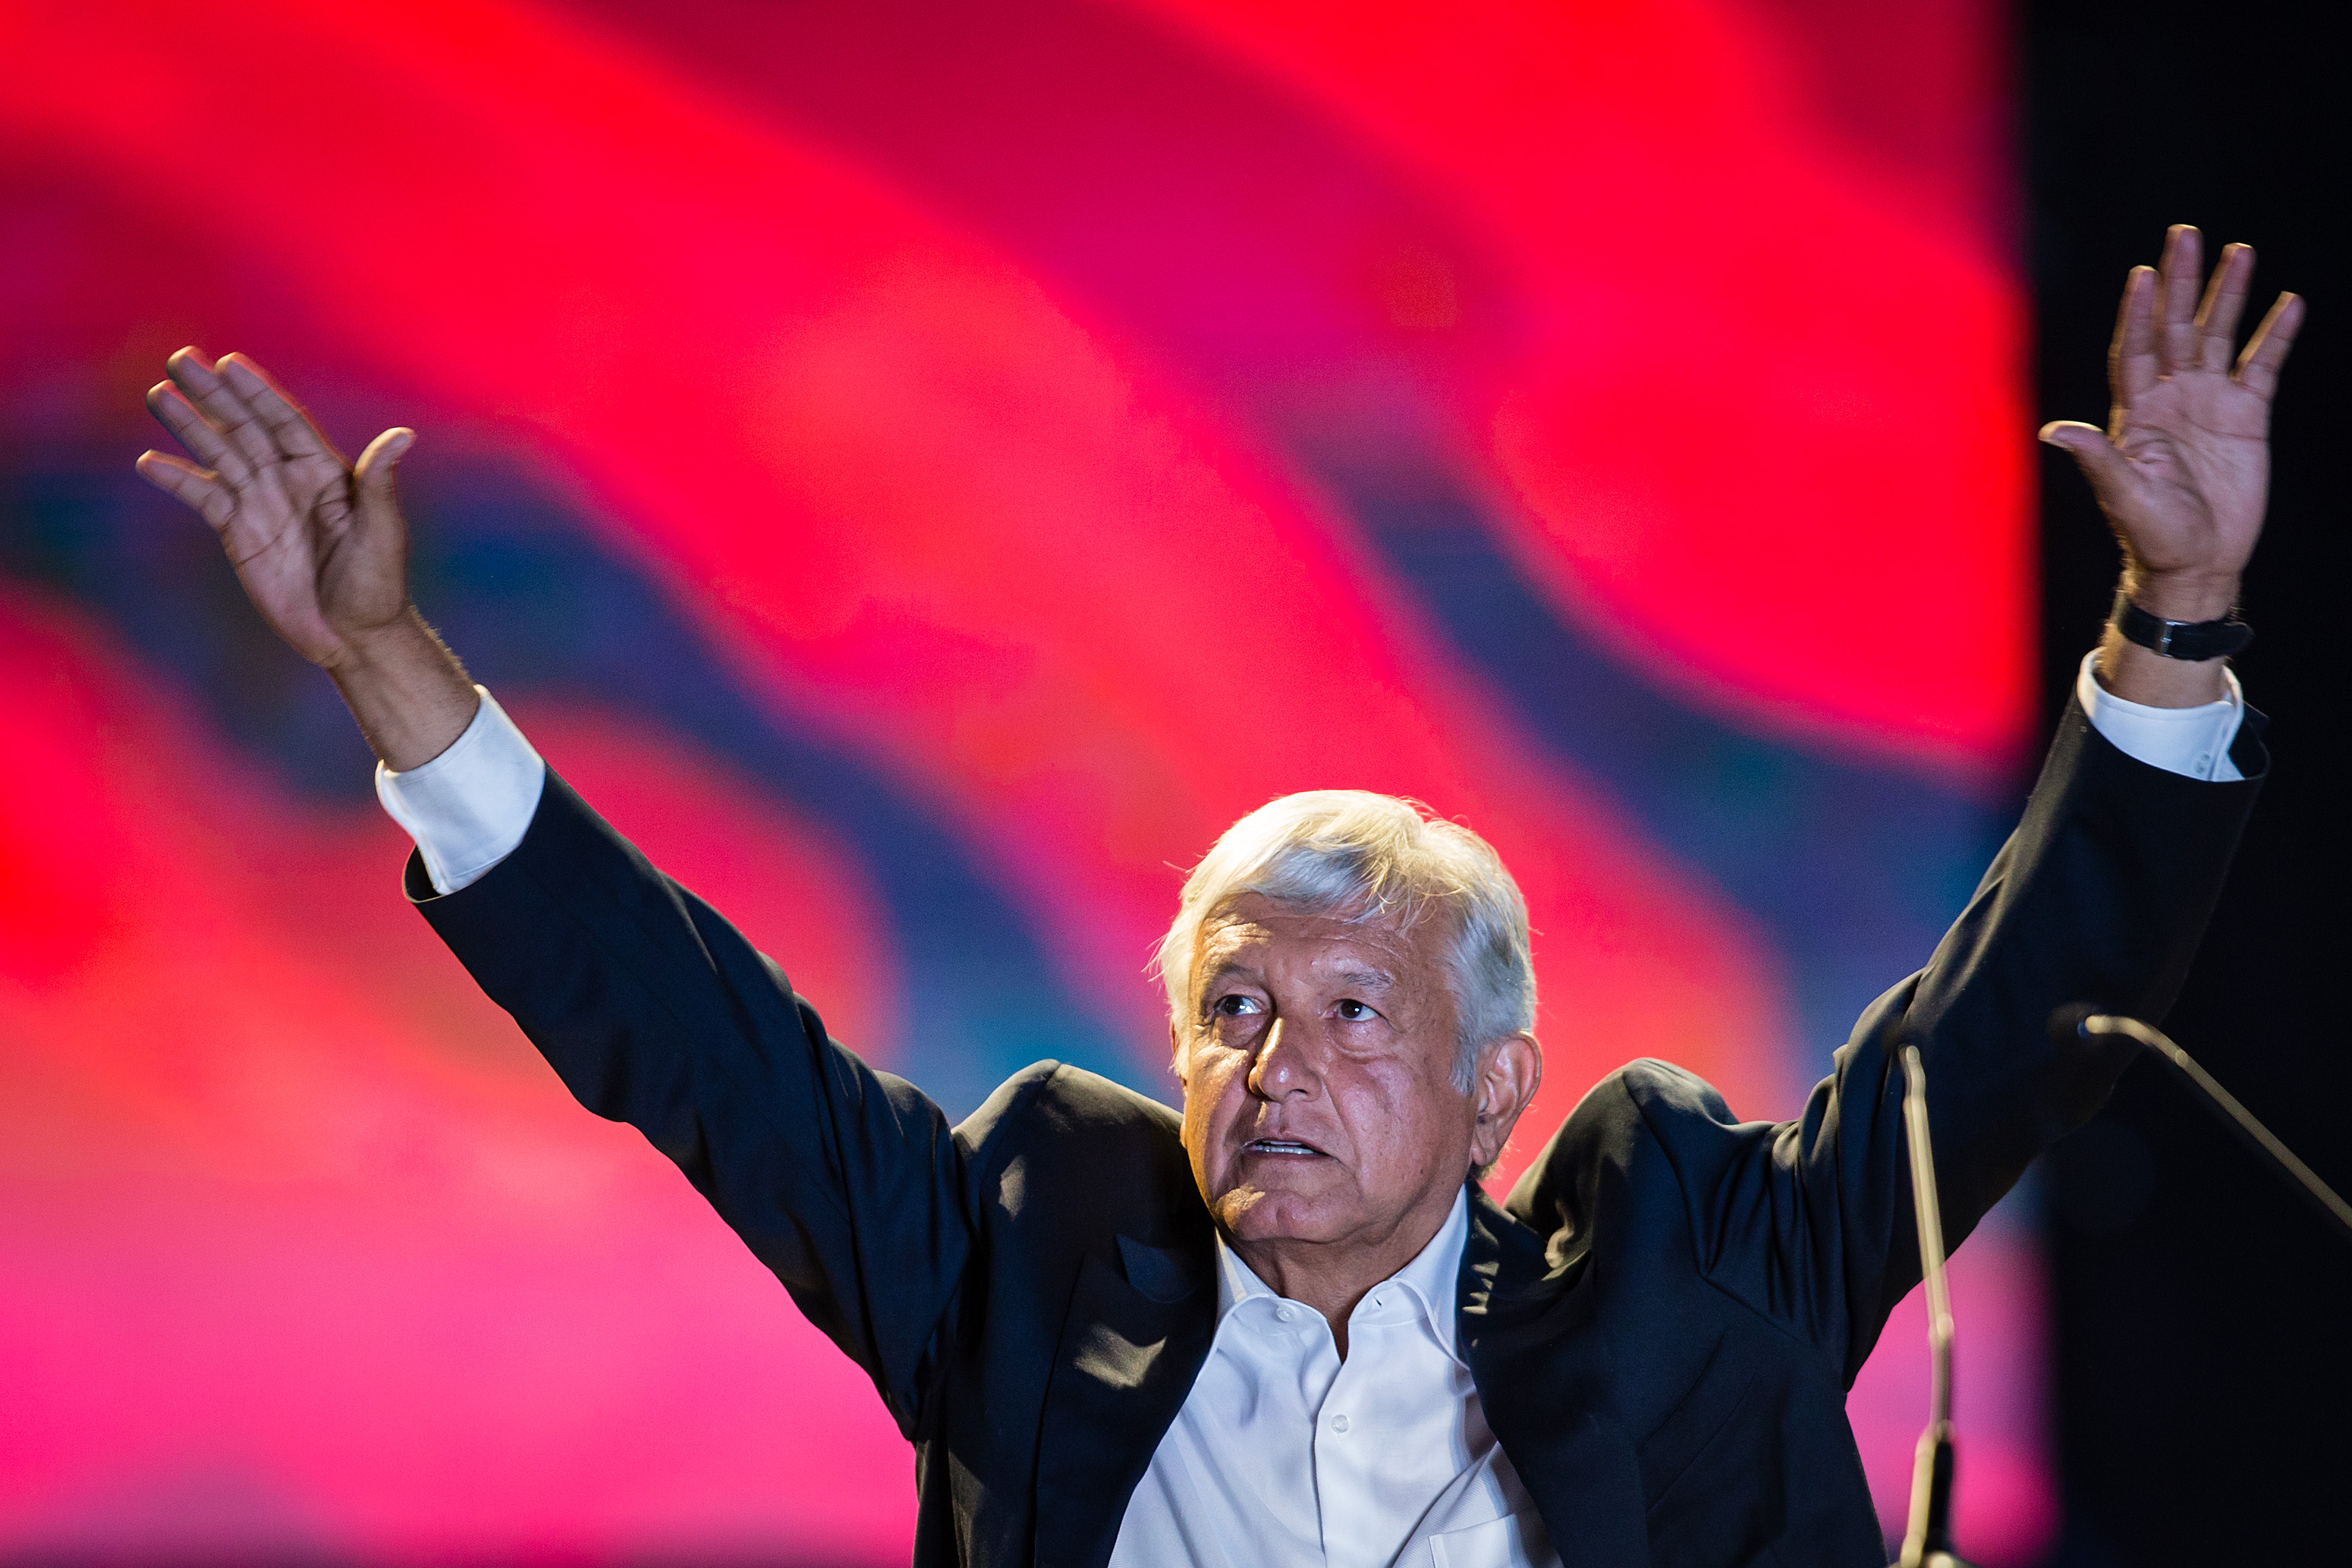 Presidential candidate Andres Manuel Lopez Obrador delivers a speech during the final event of the 2018 Presidential Campaign at Azteca Stadium on June 27, 2018 in Mexico City, Mexico.